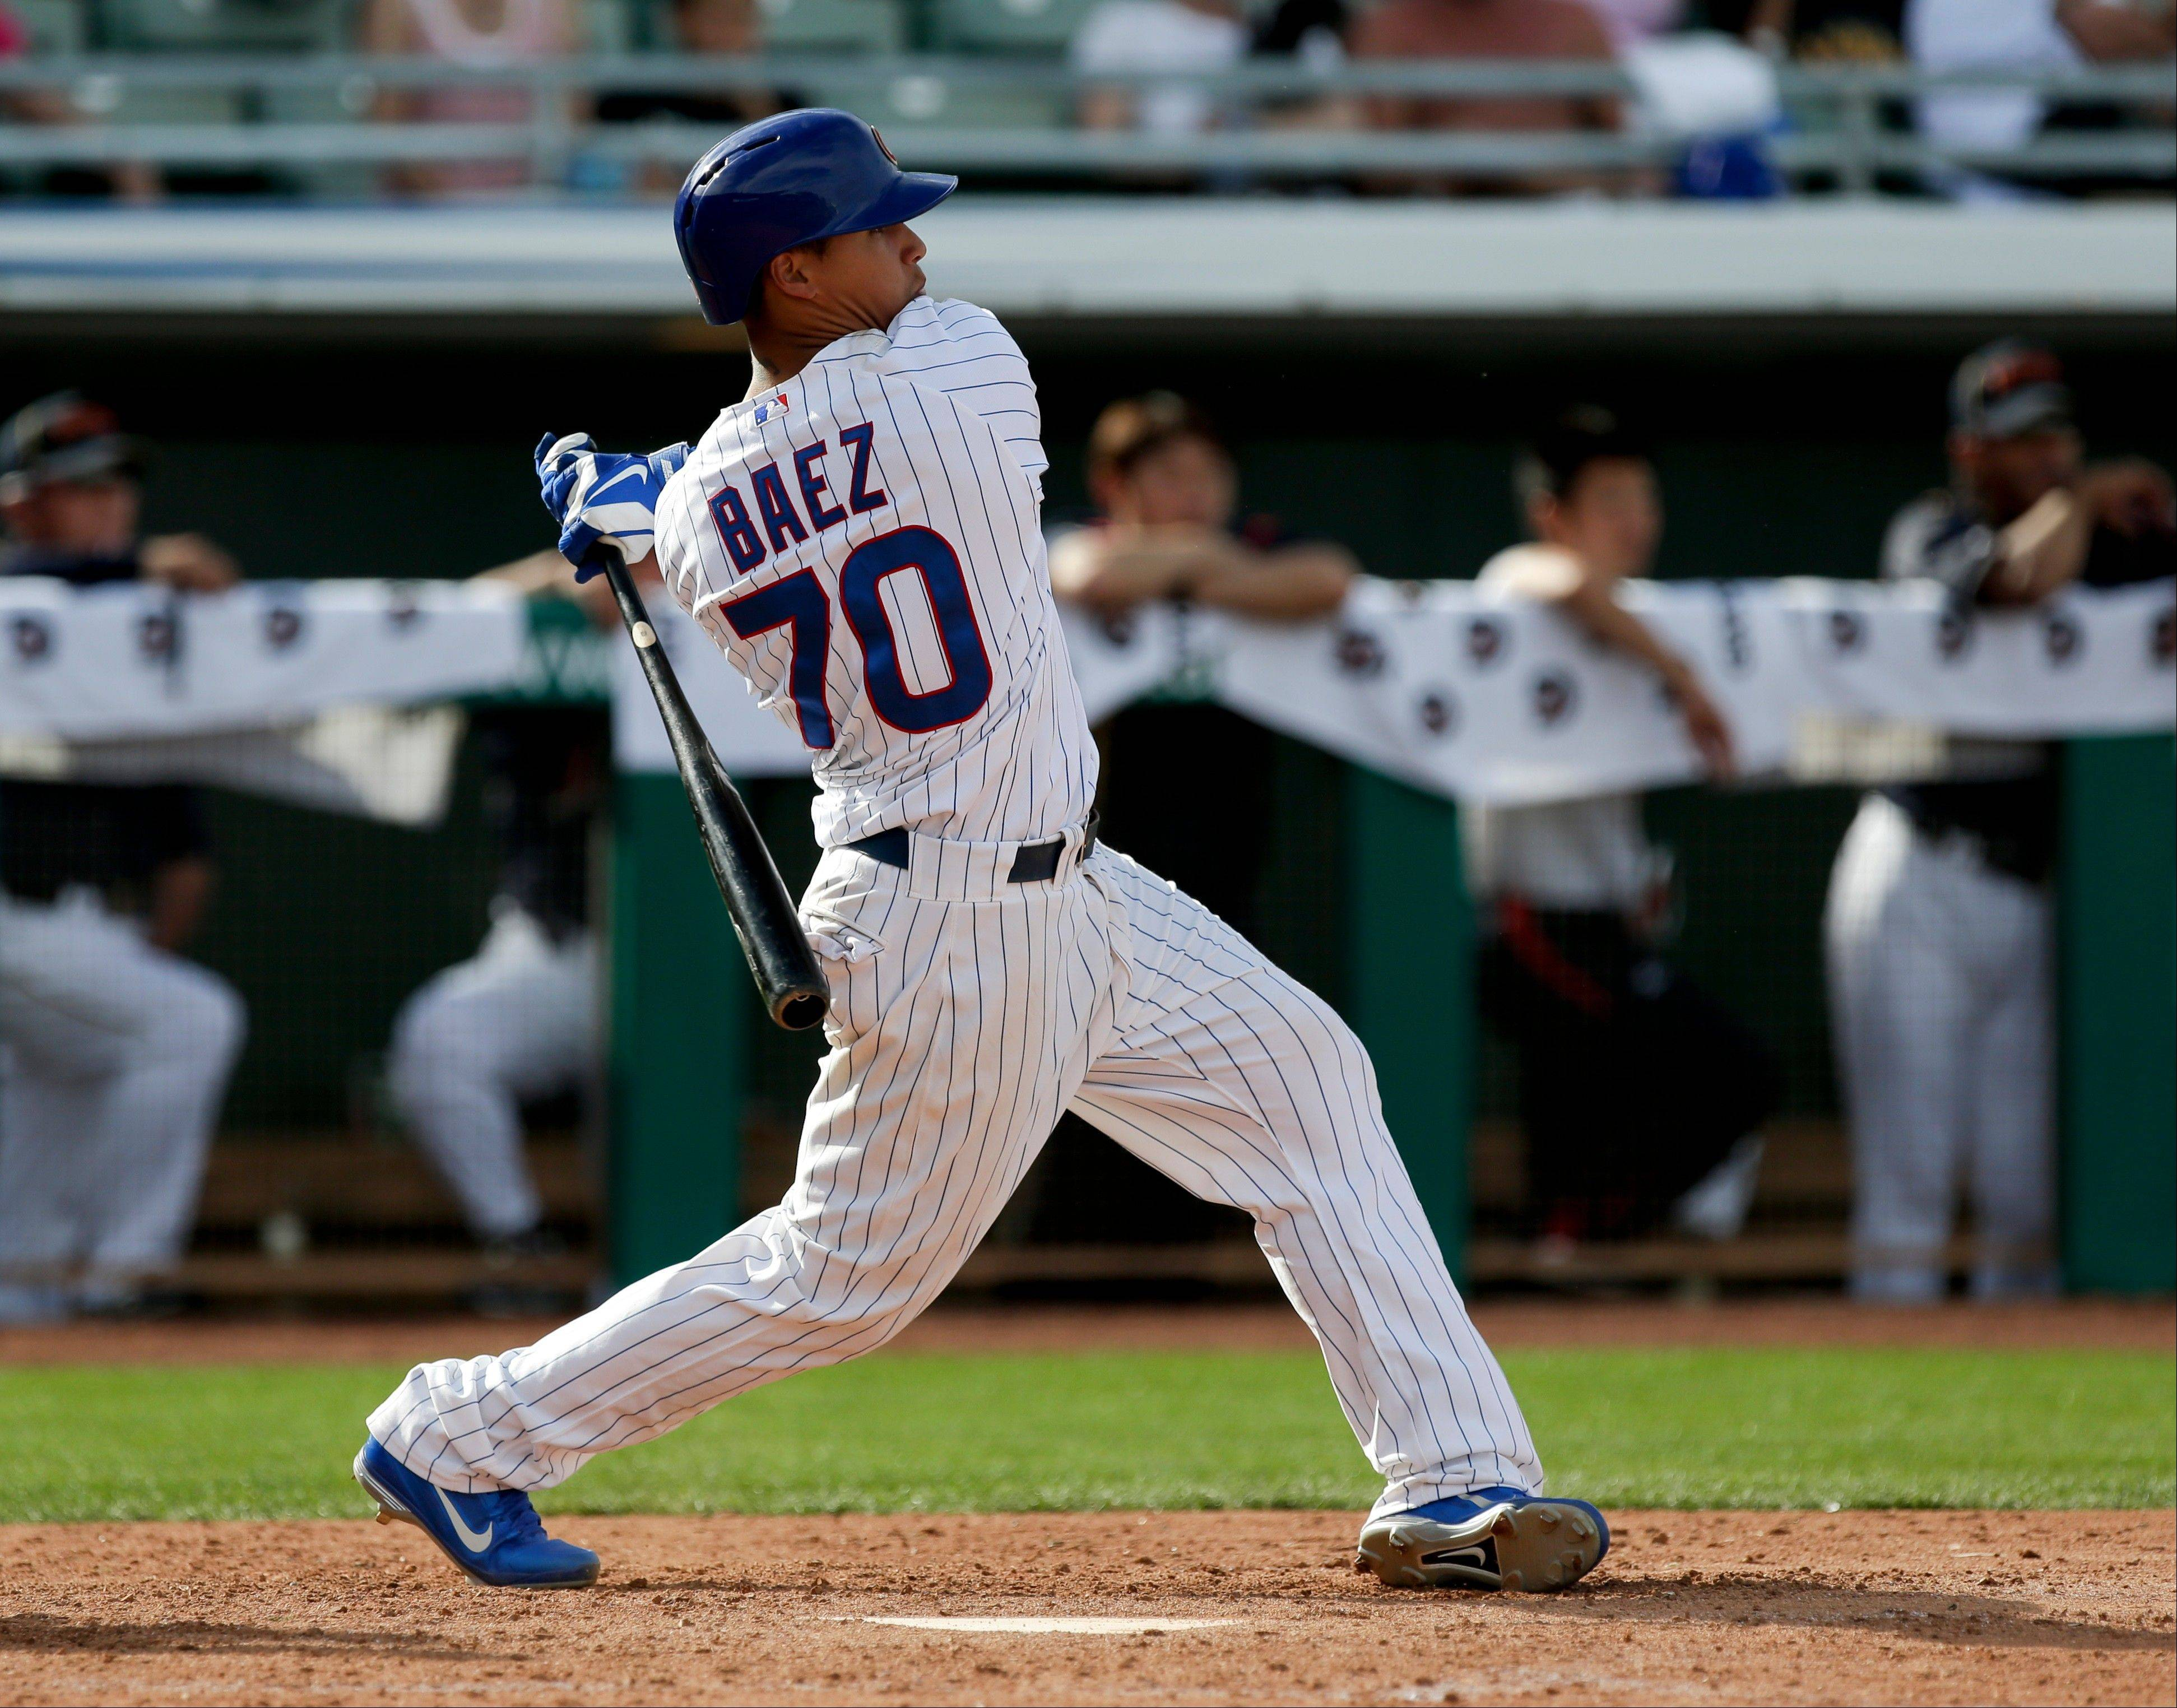 Shortstop Javier Baez was at Wrigley Field on Saturday to be honored as the Cubs' minor-league player of the year.